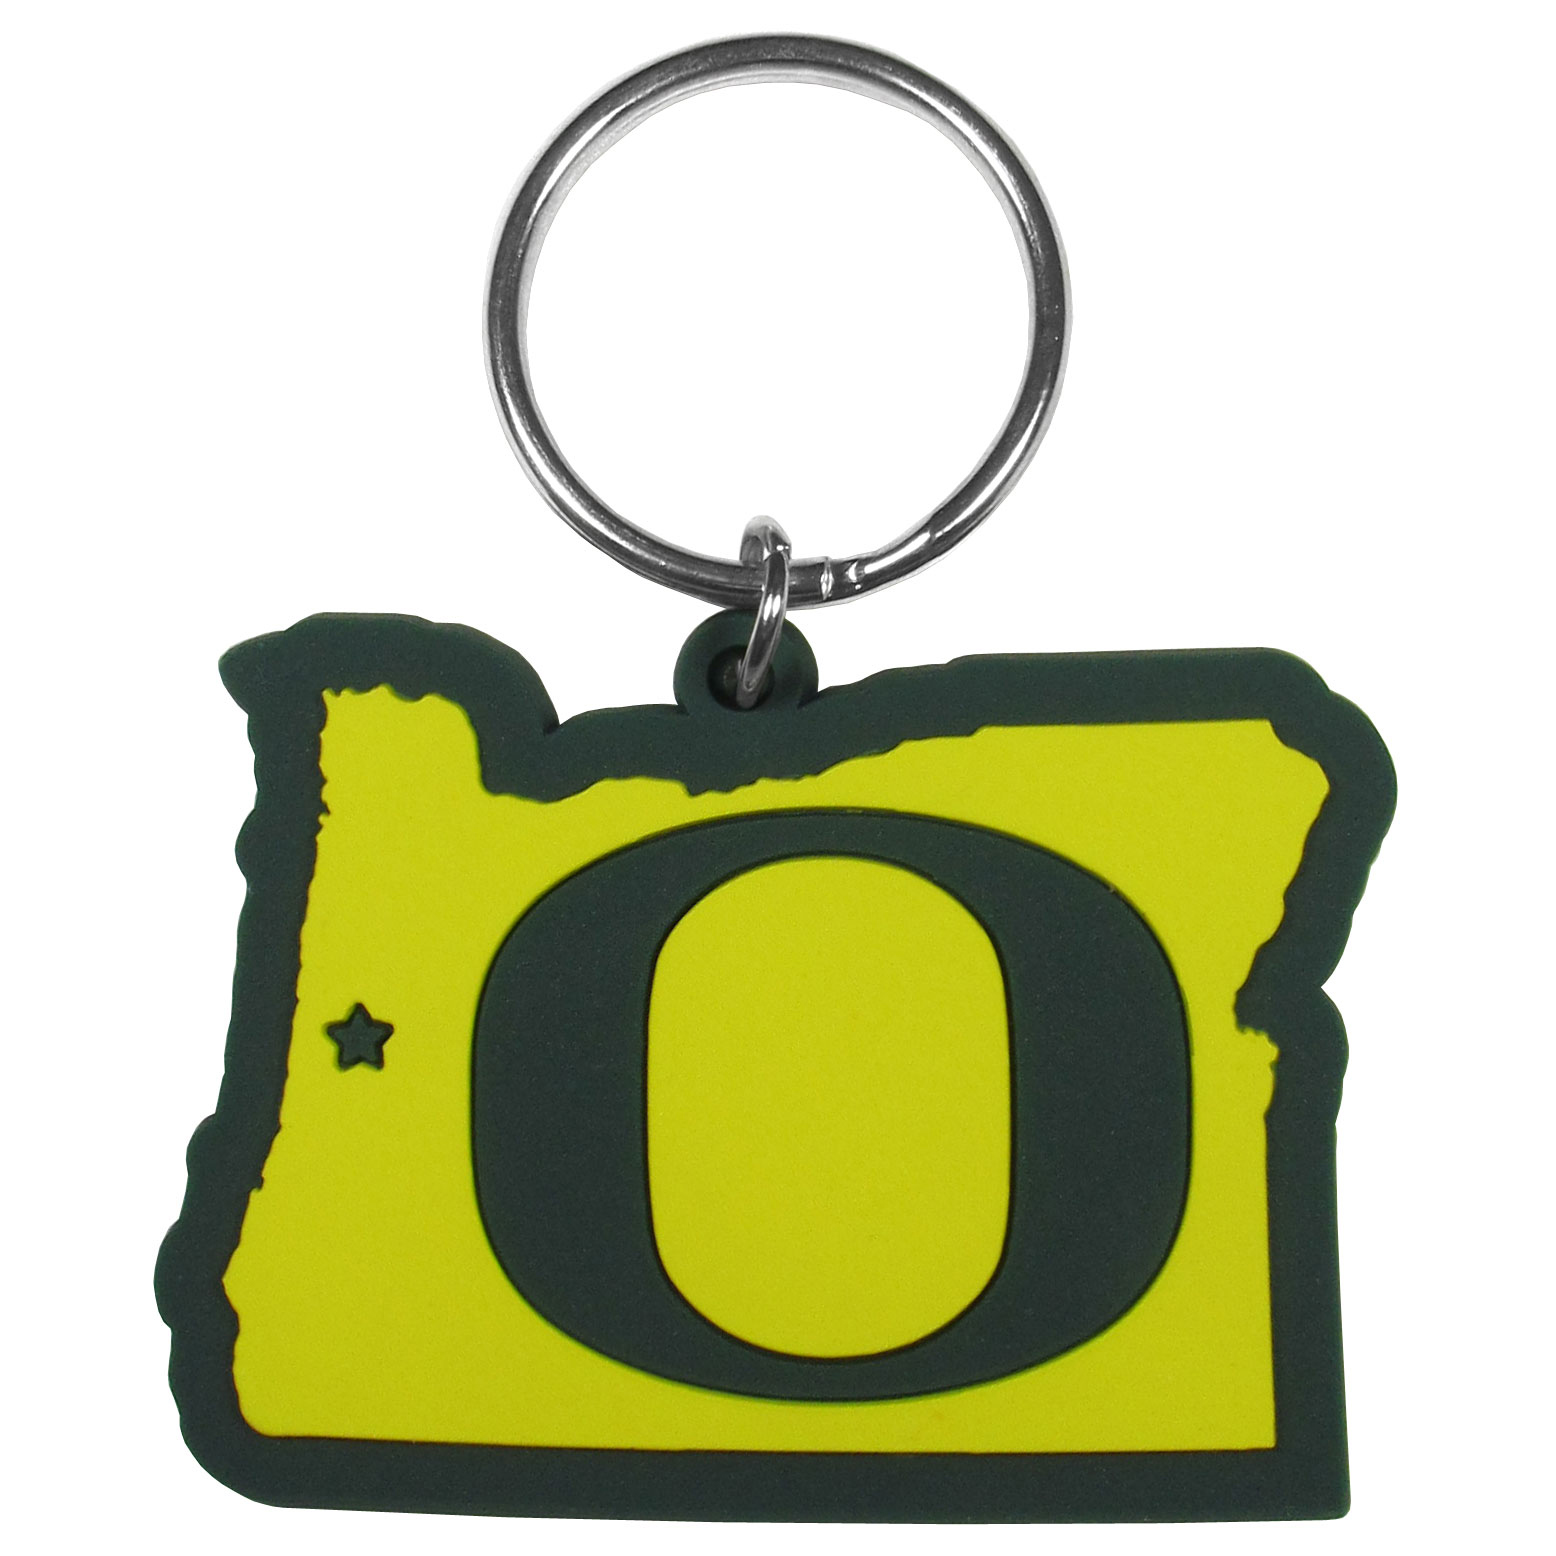 Oregon Ducks Home State Flexi Key Chain - Our flexible Oregon Ducks key chains are a fun way to carry your team with you. The pliable rubber material is extremely durable and the layered colors add a great 3D look to the key chain. This is really where quality and a great price meet to create a true fan favorite.